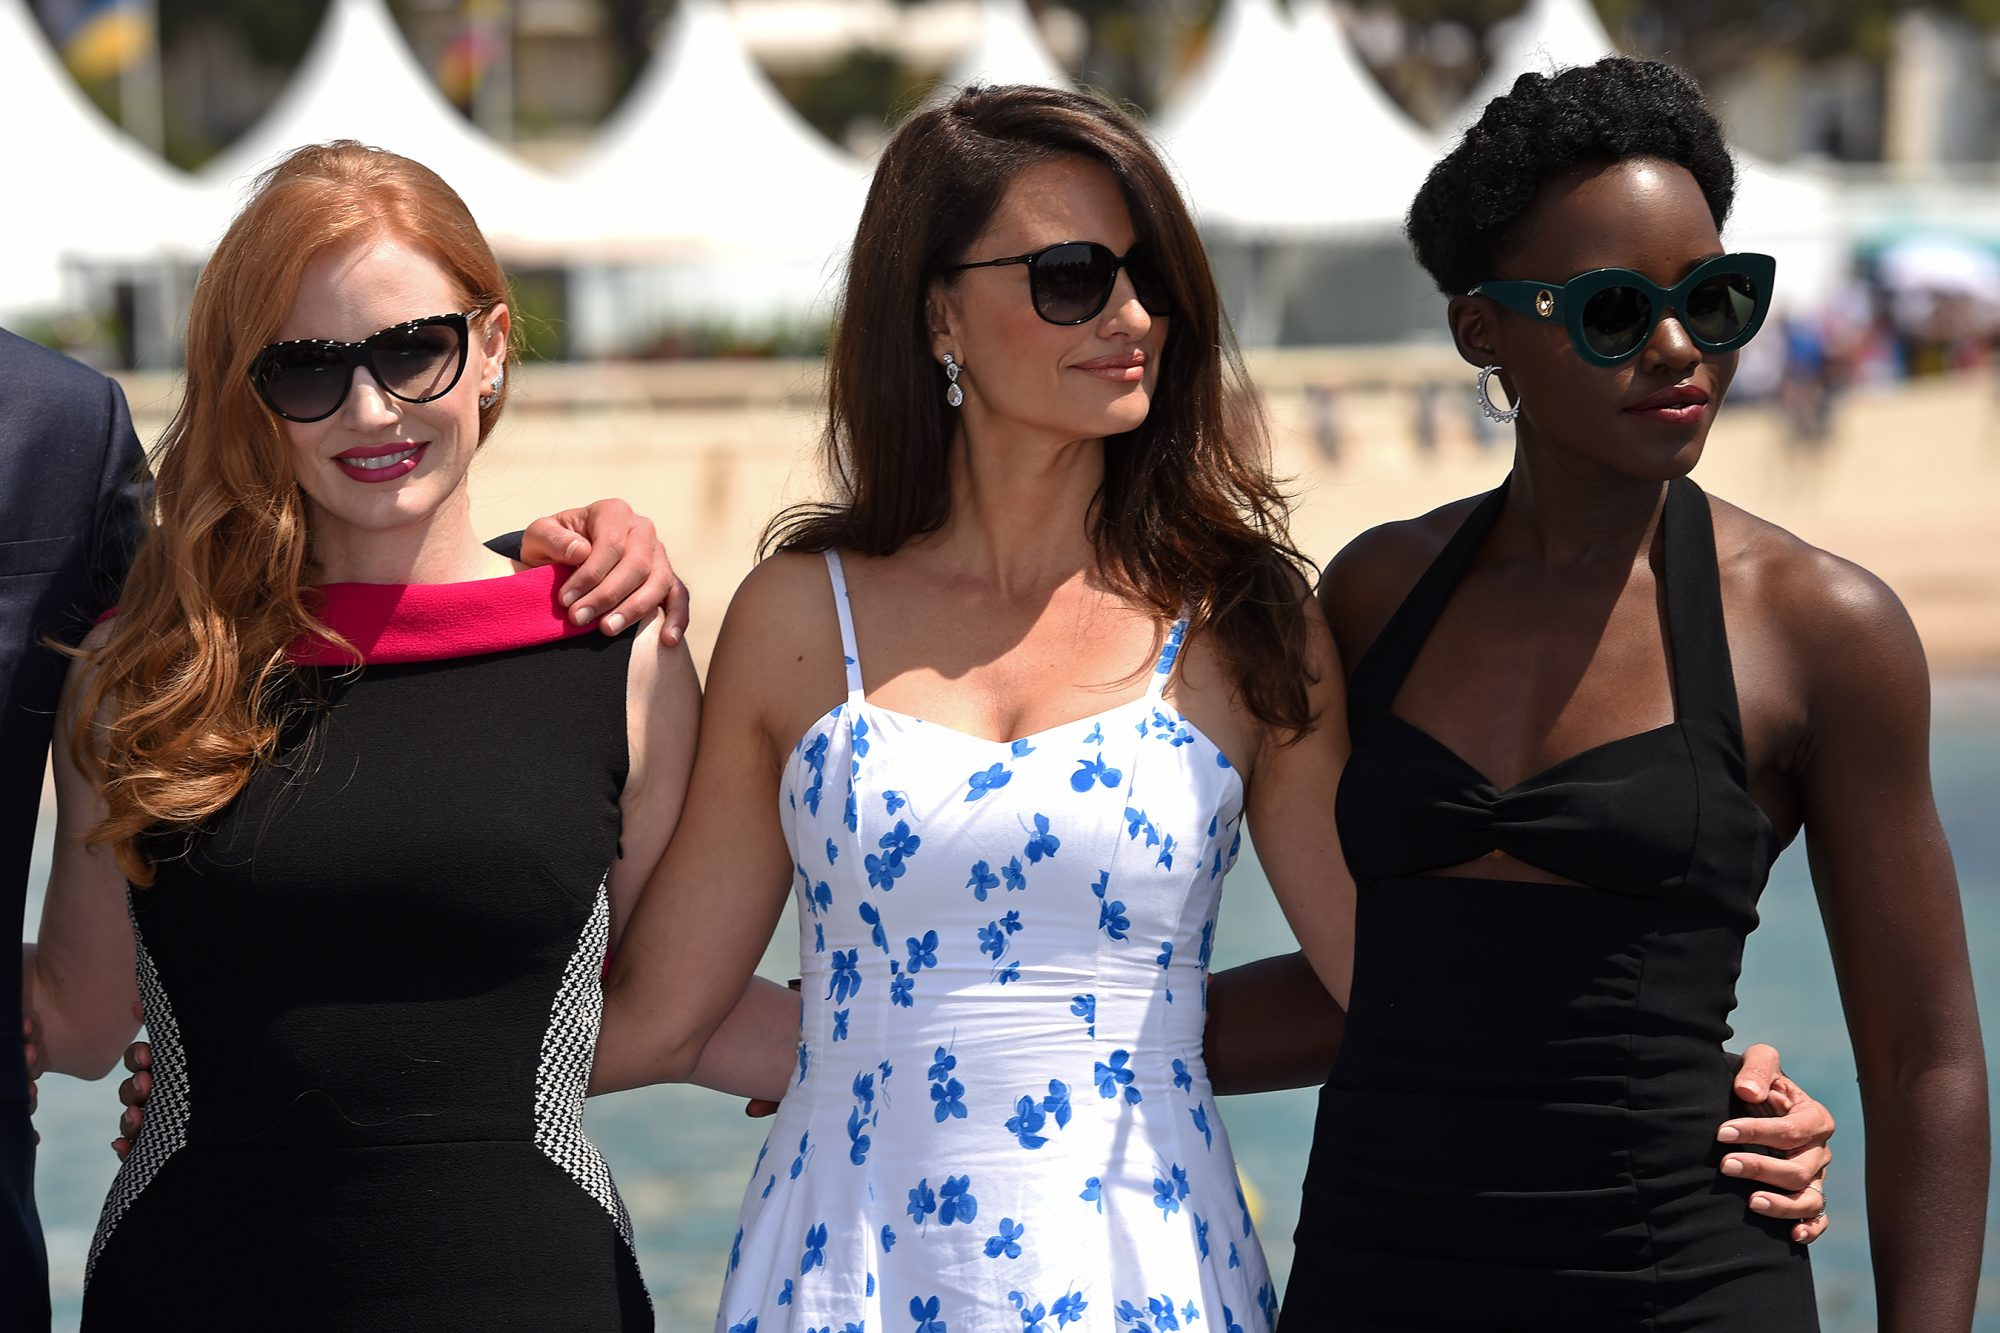 Jessica Chastain, Penelope Cruz and Lupita Nyong'o